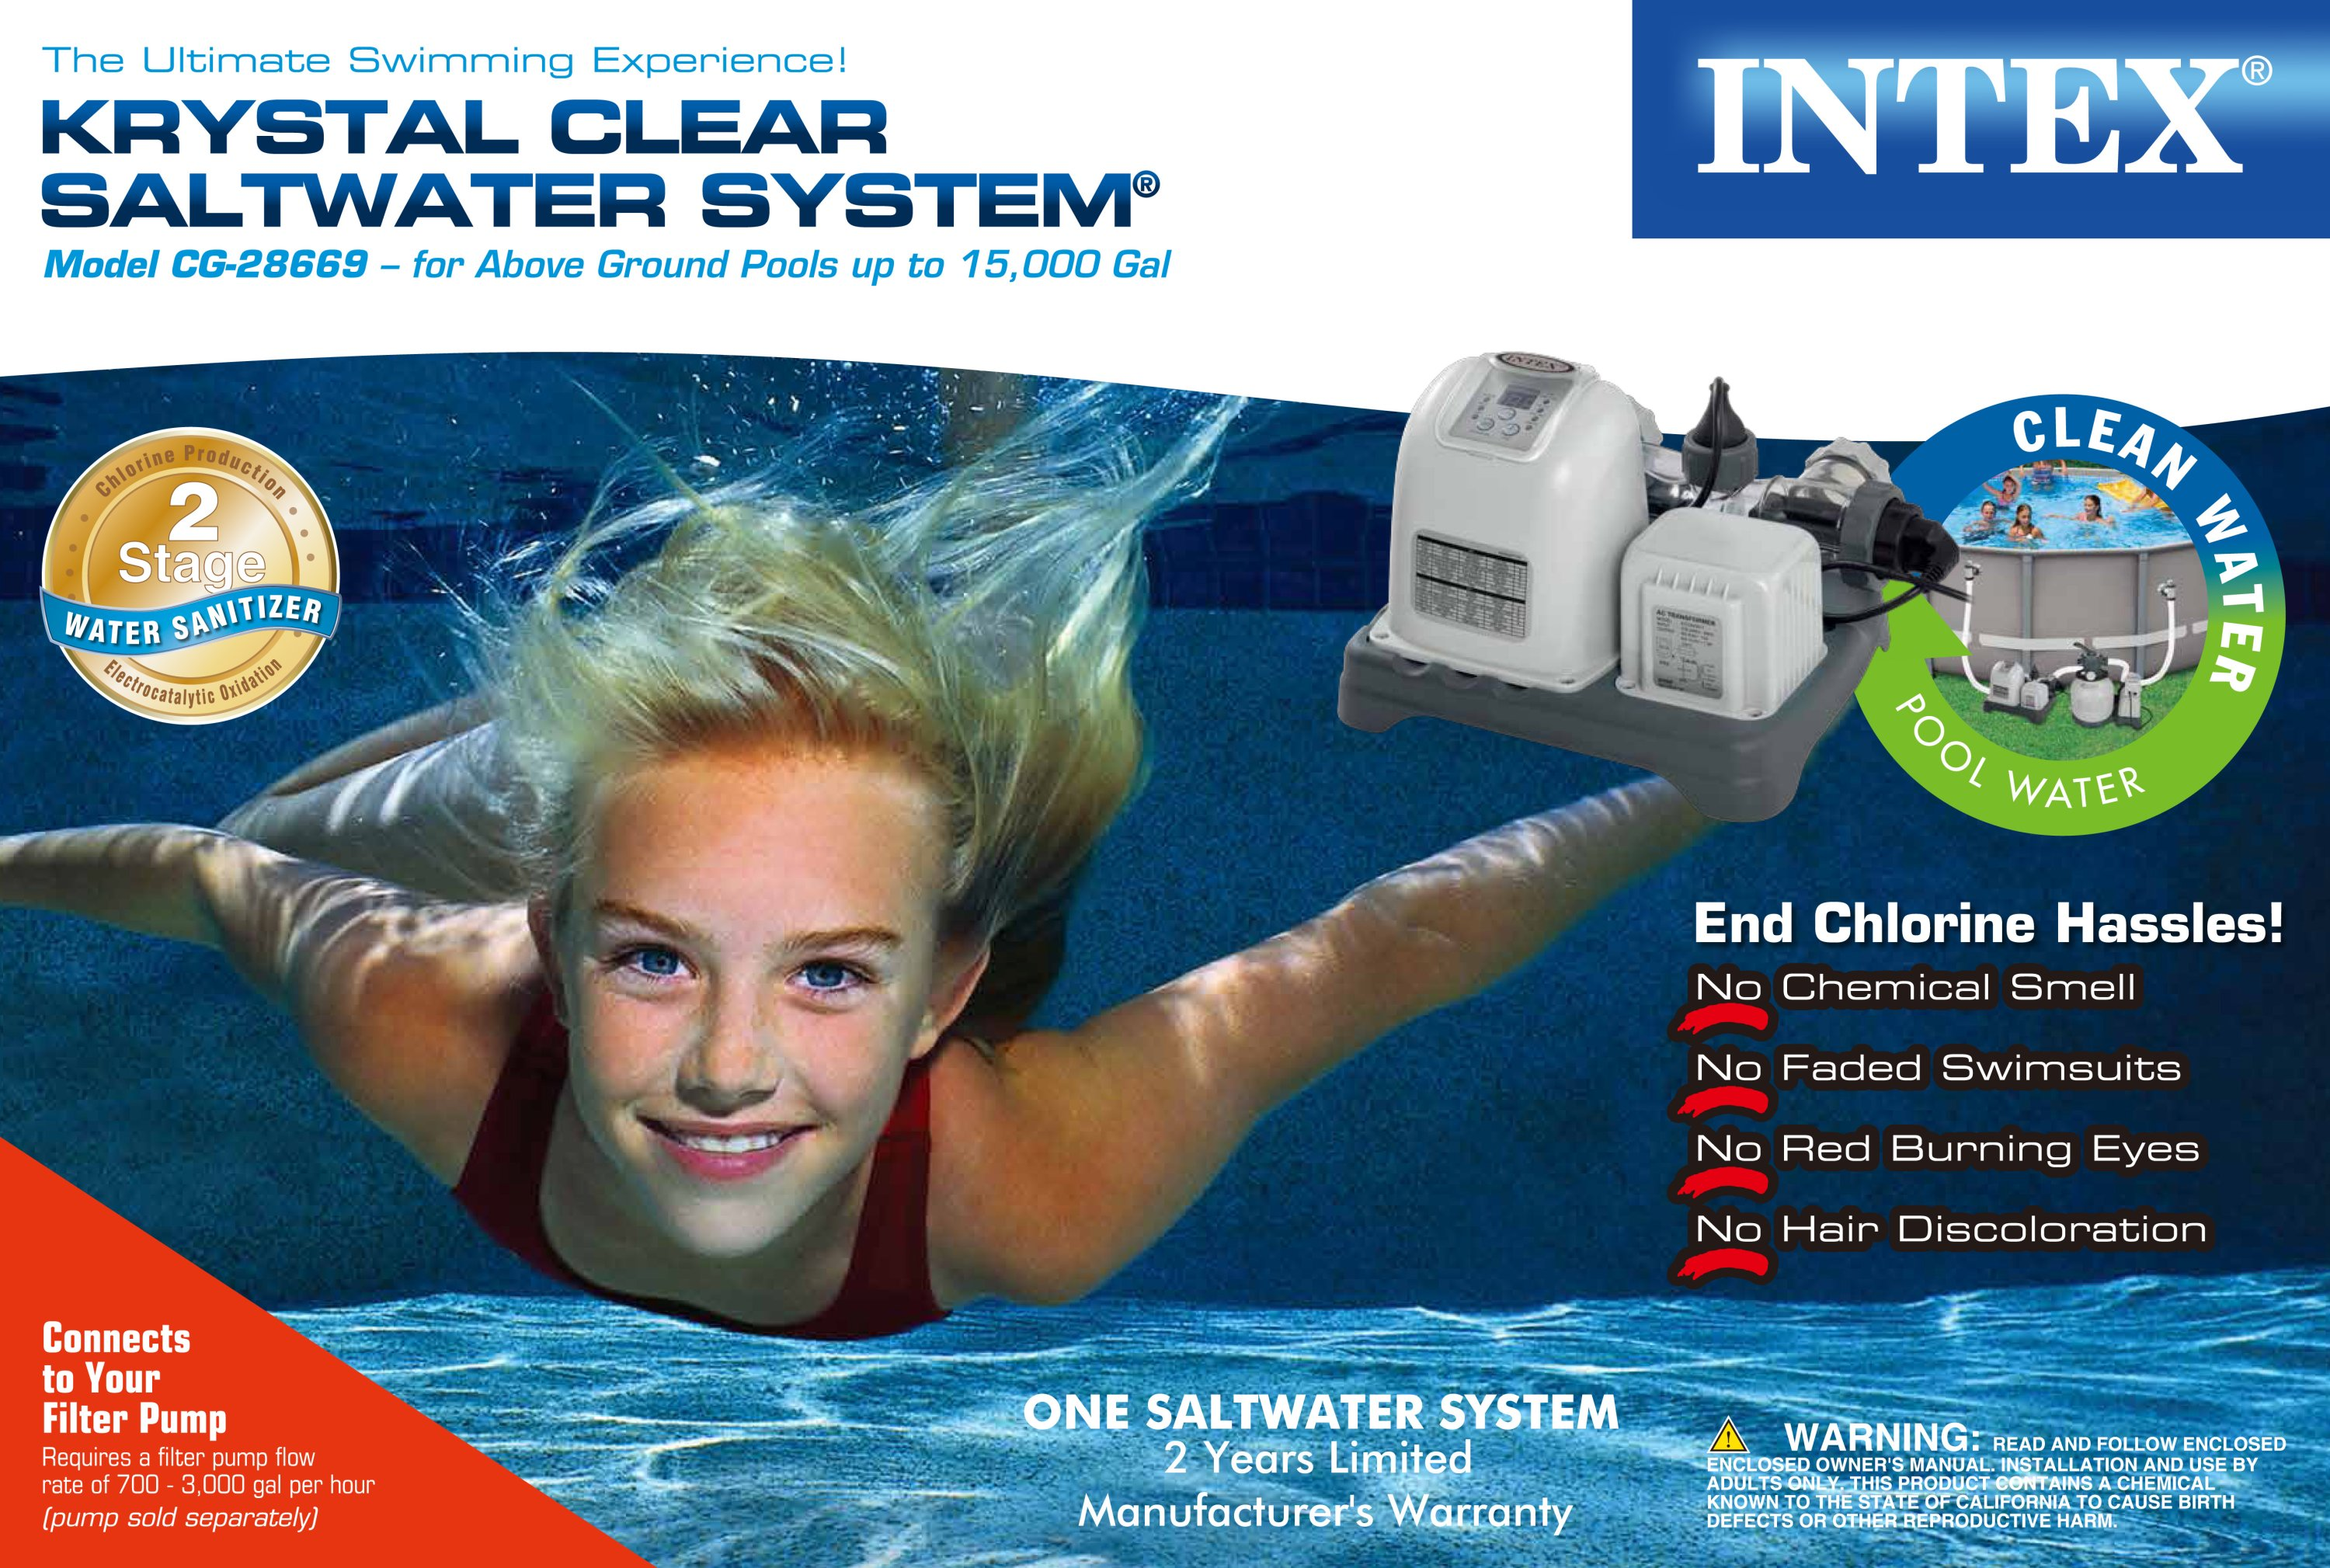 Intex Krystal Clear Saltwater System For Above Ground